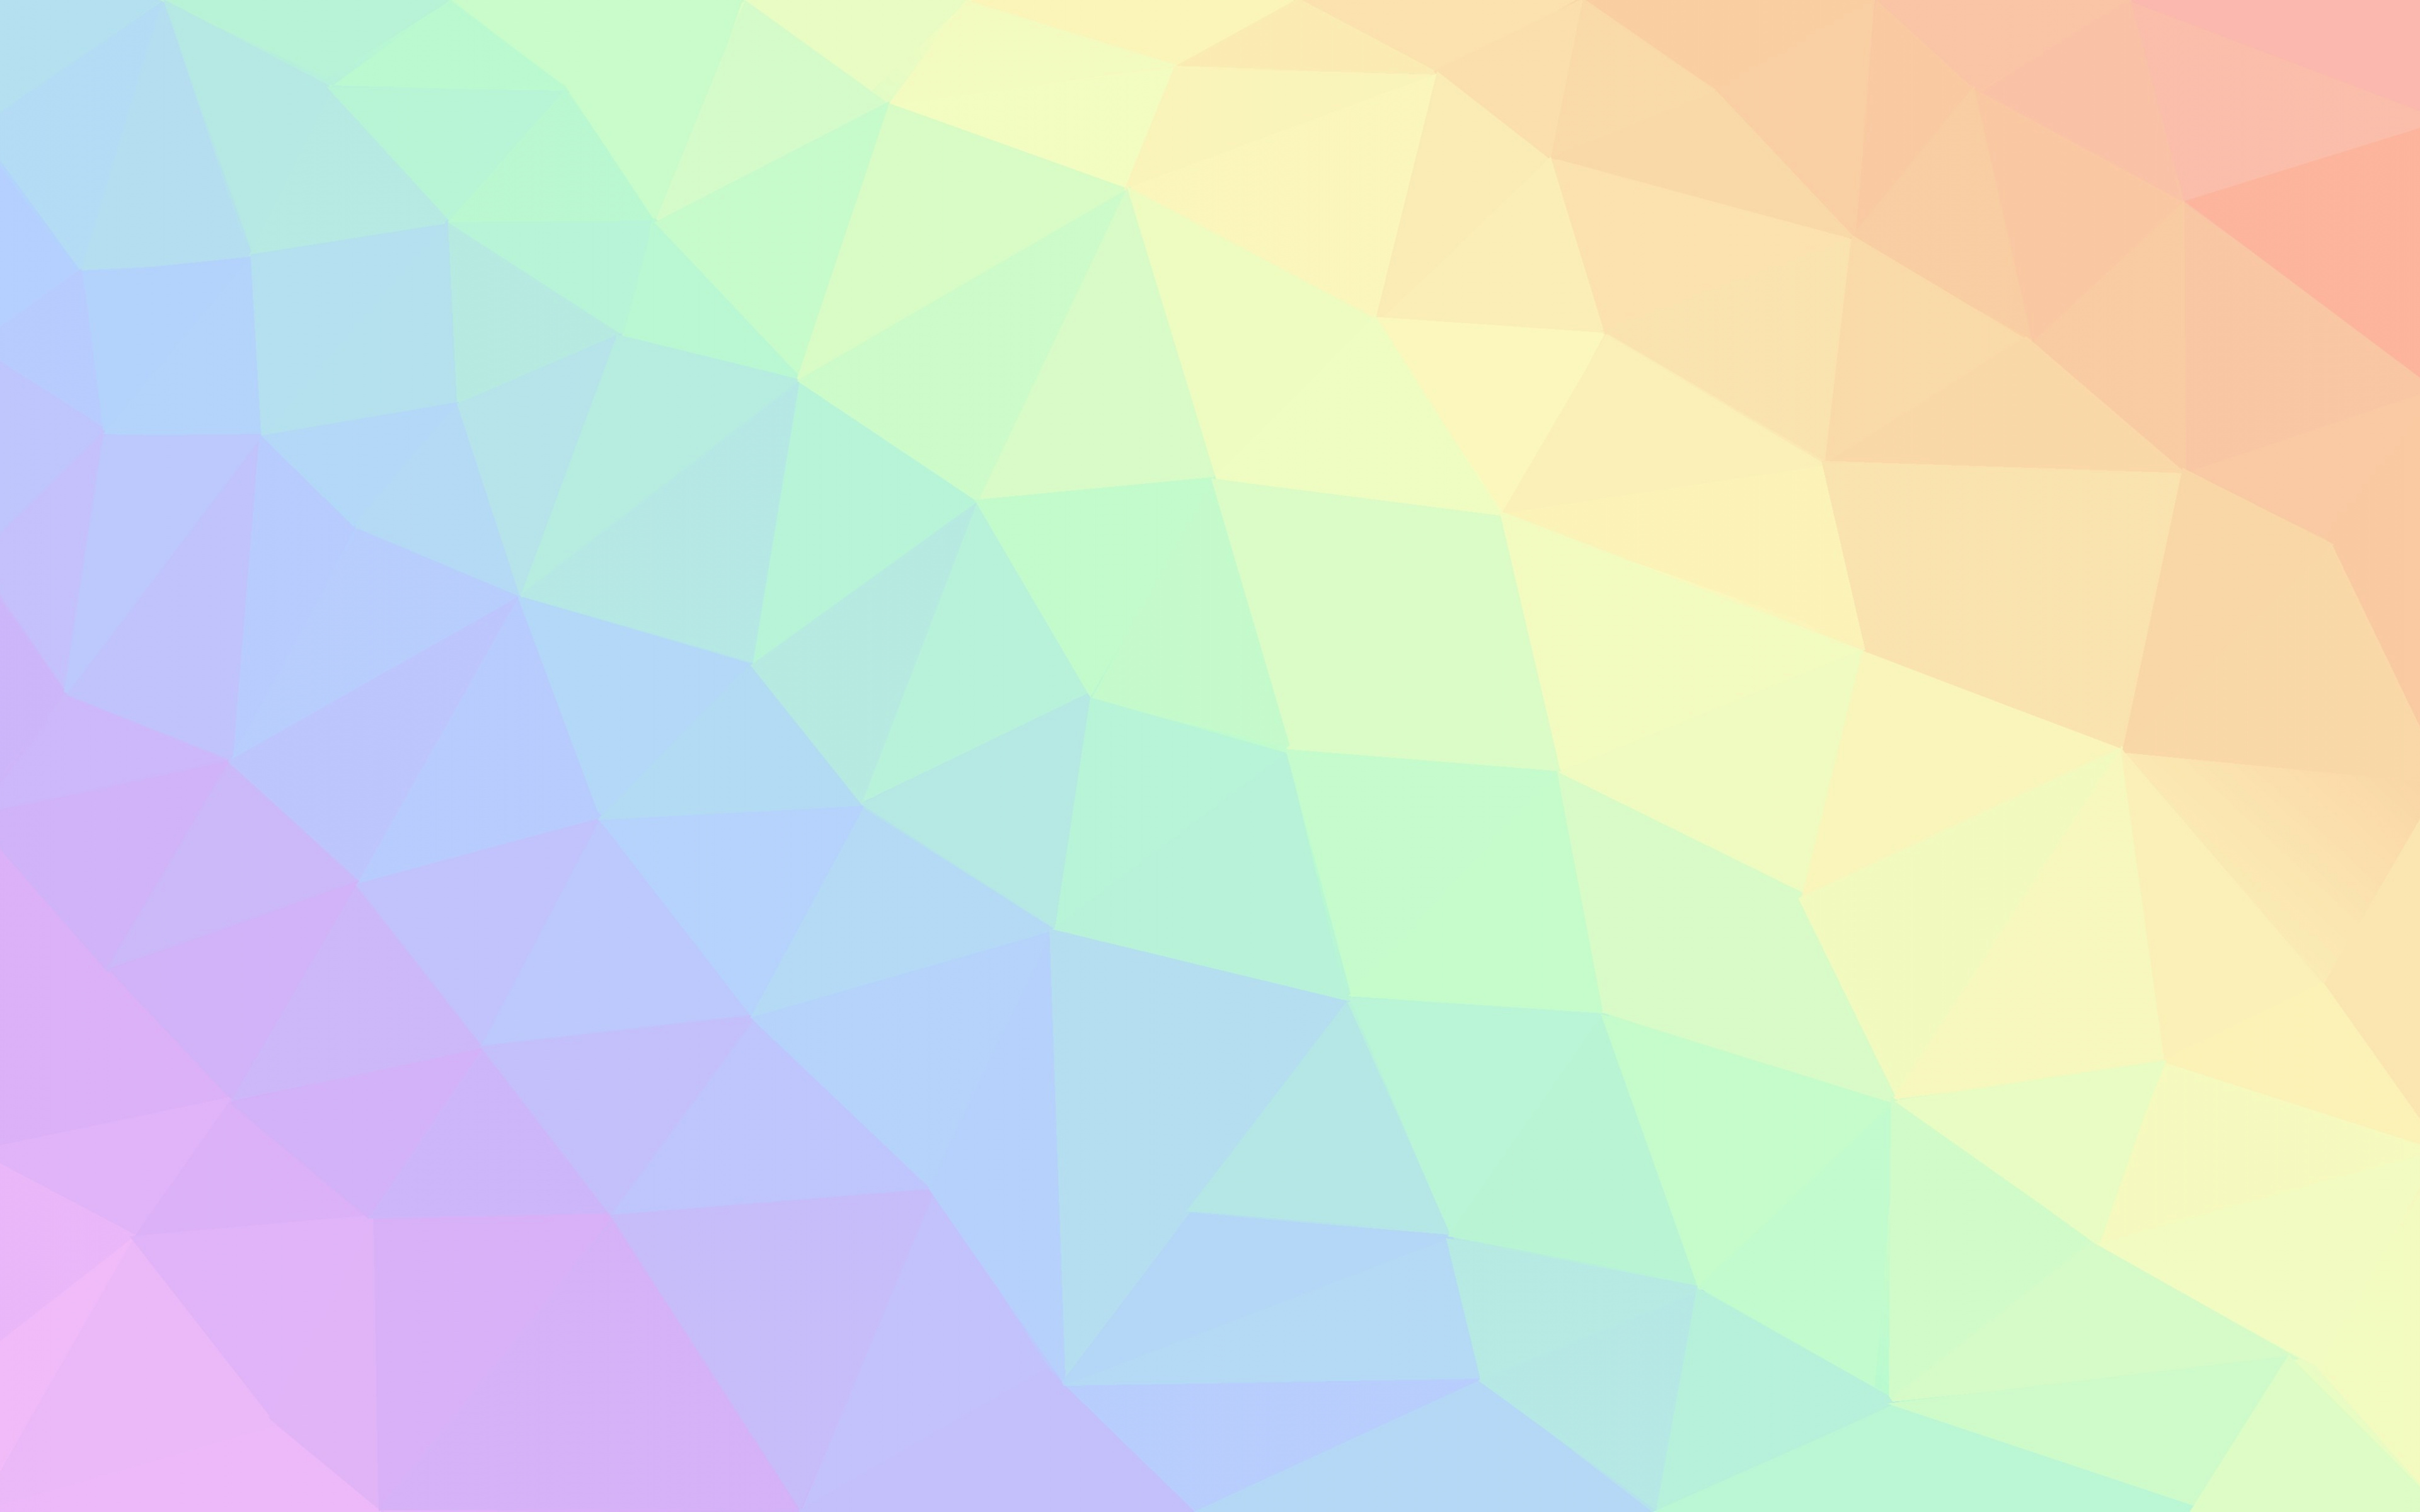 Light Colors, Geometric, Pattern, Abstract, Wallpaper - Abstract Wallpaper Light Colors - HD Wallpaper